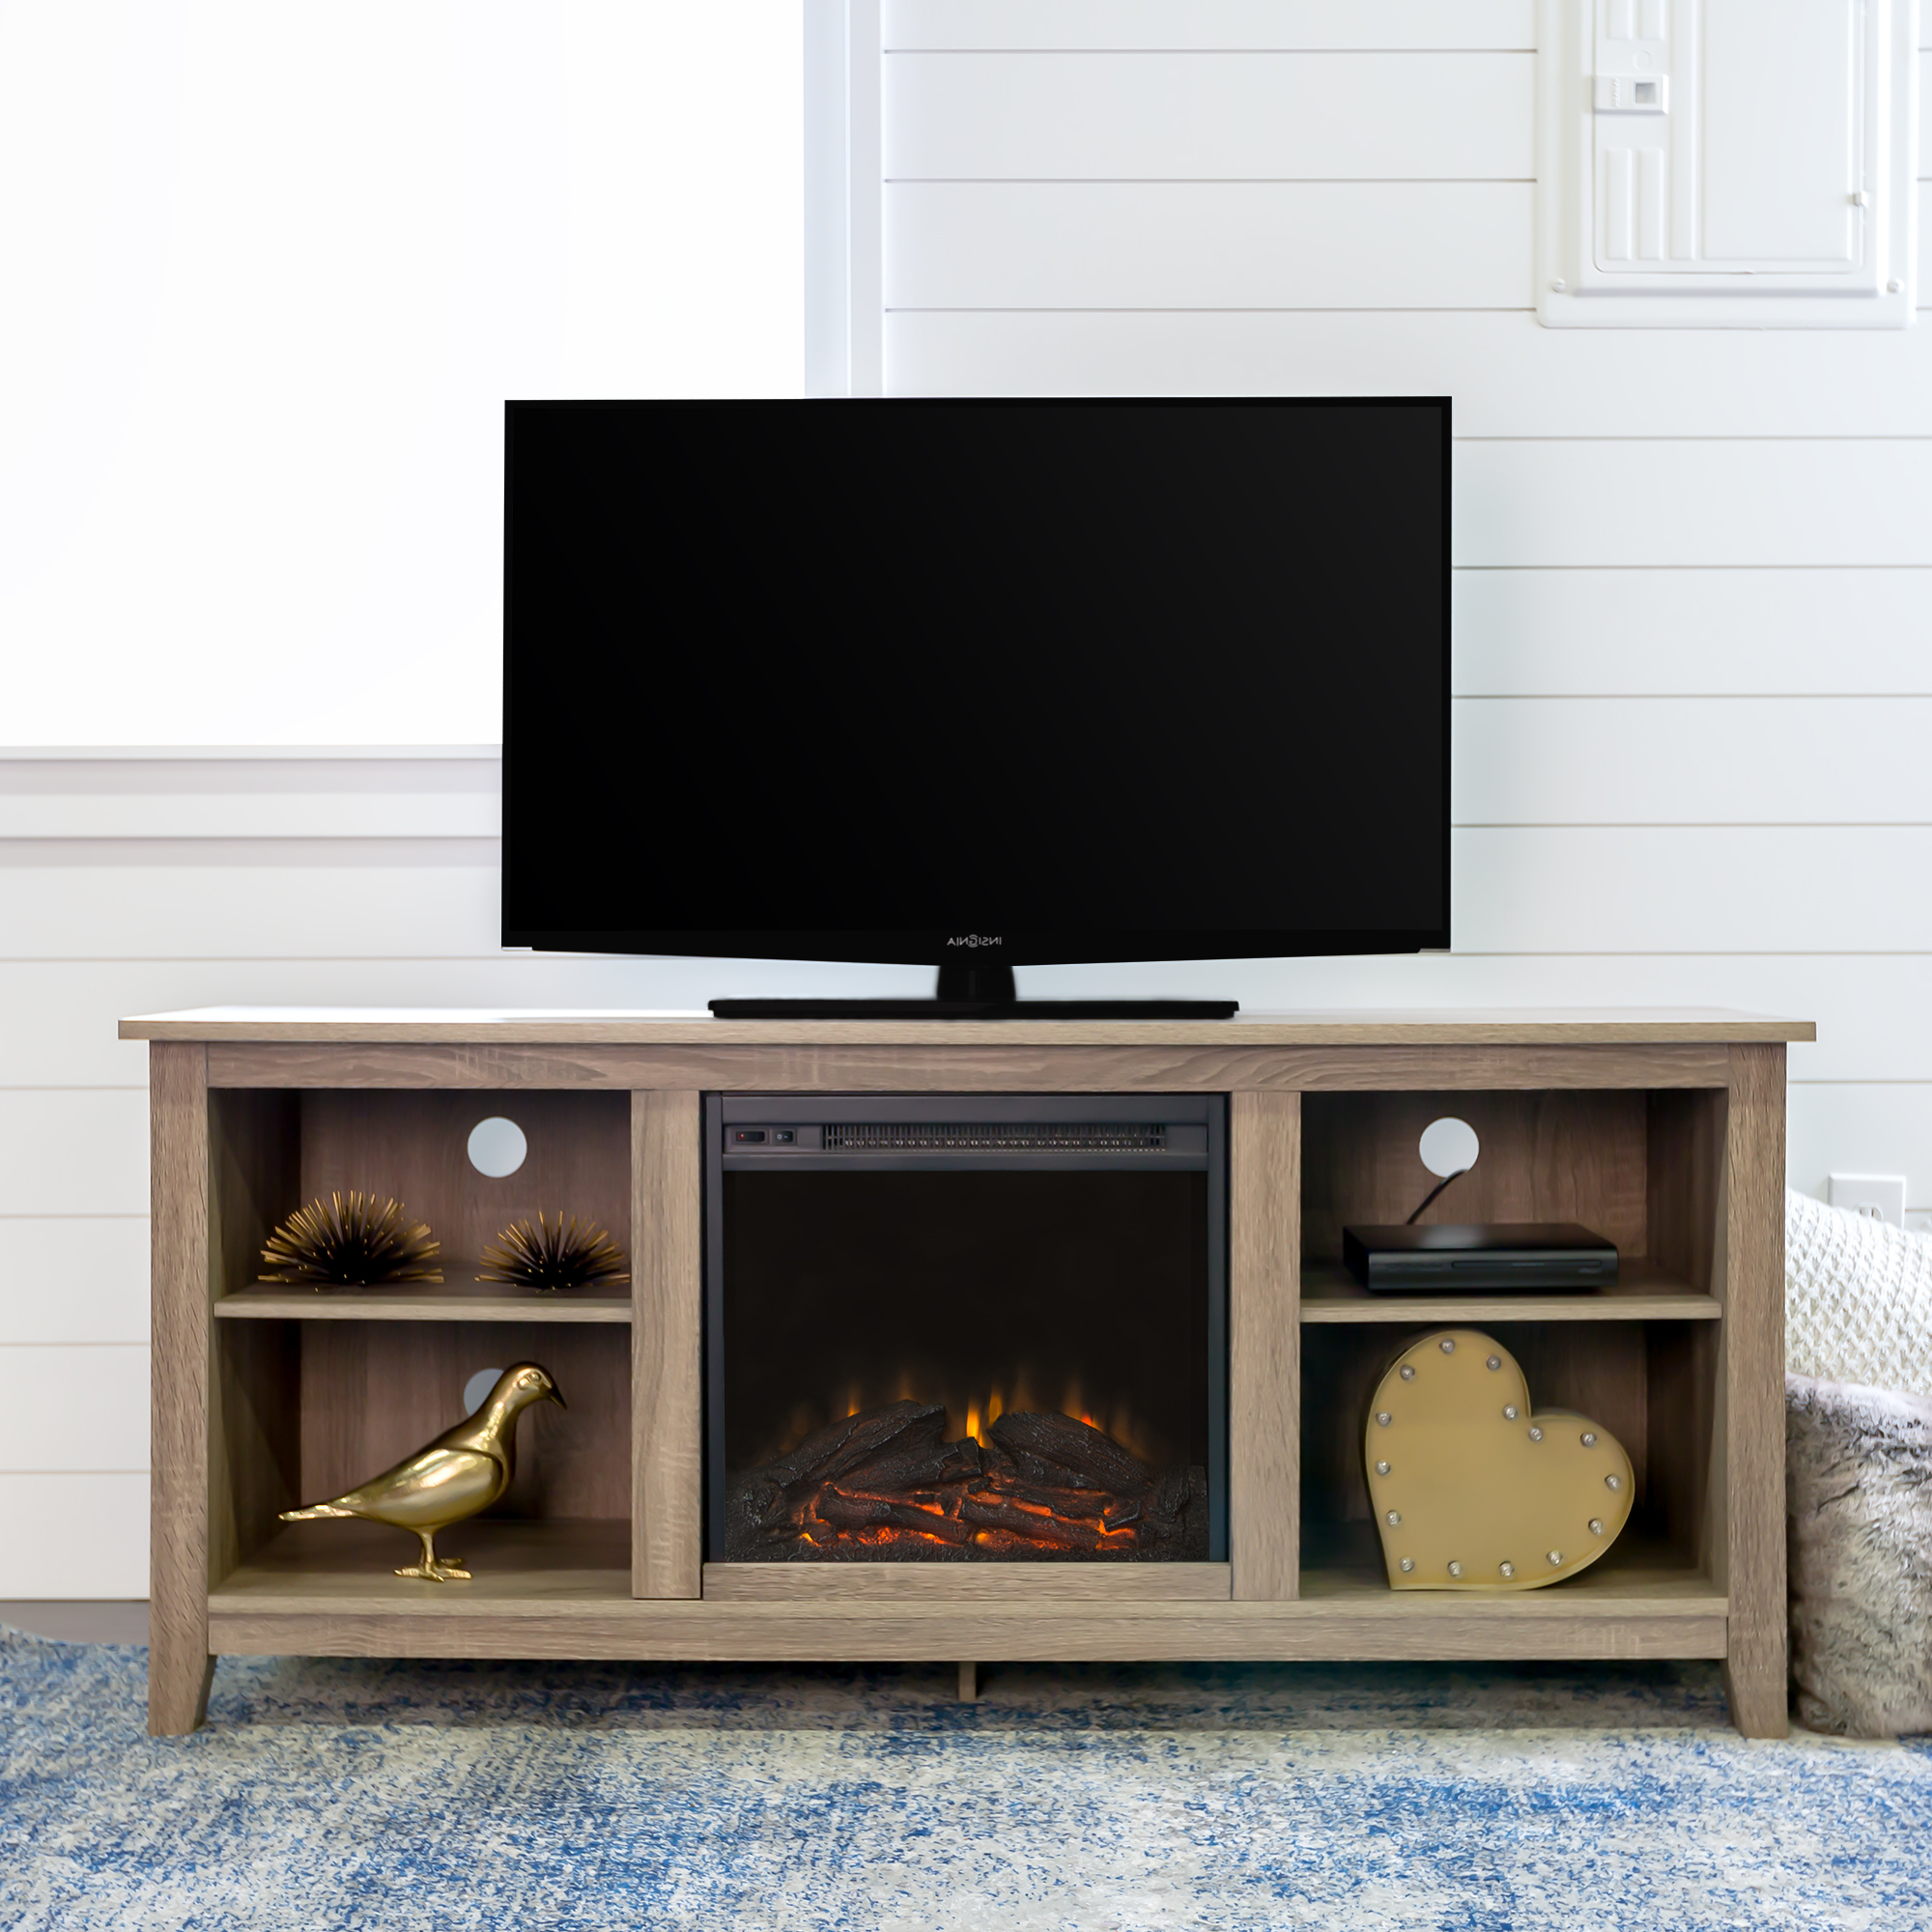 Tv Stands With Storage Baskets Throughout Famous Tv Stands & Entertainment Centers – Walmart (View 18 of 20)